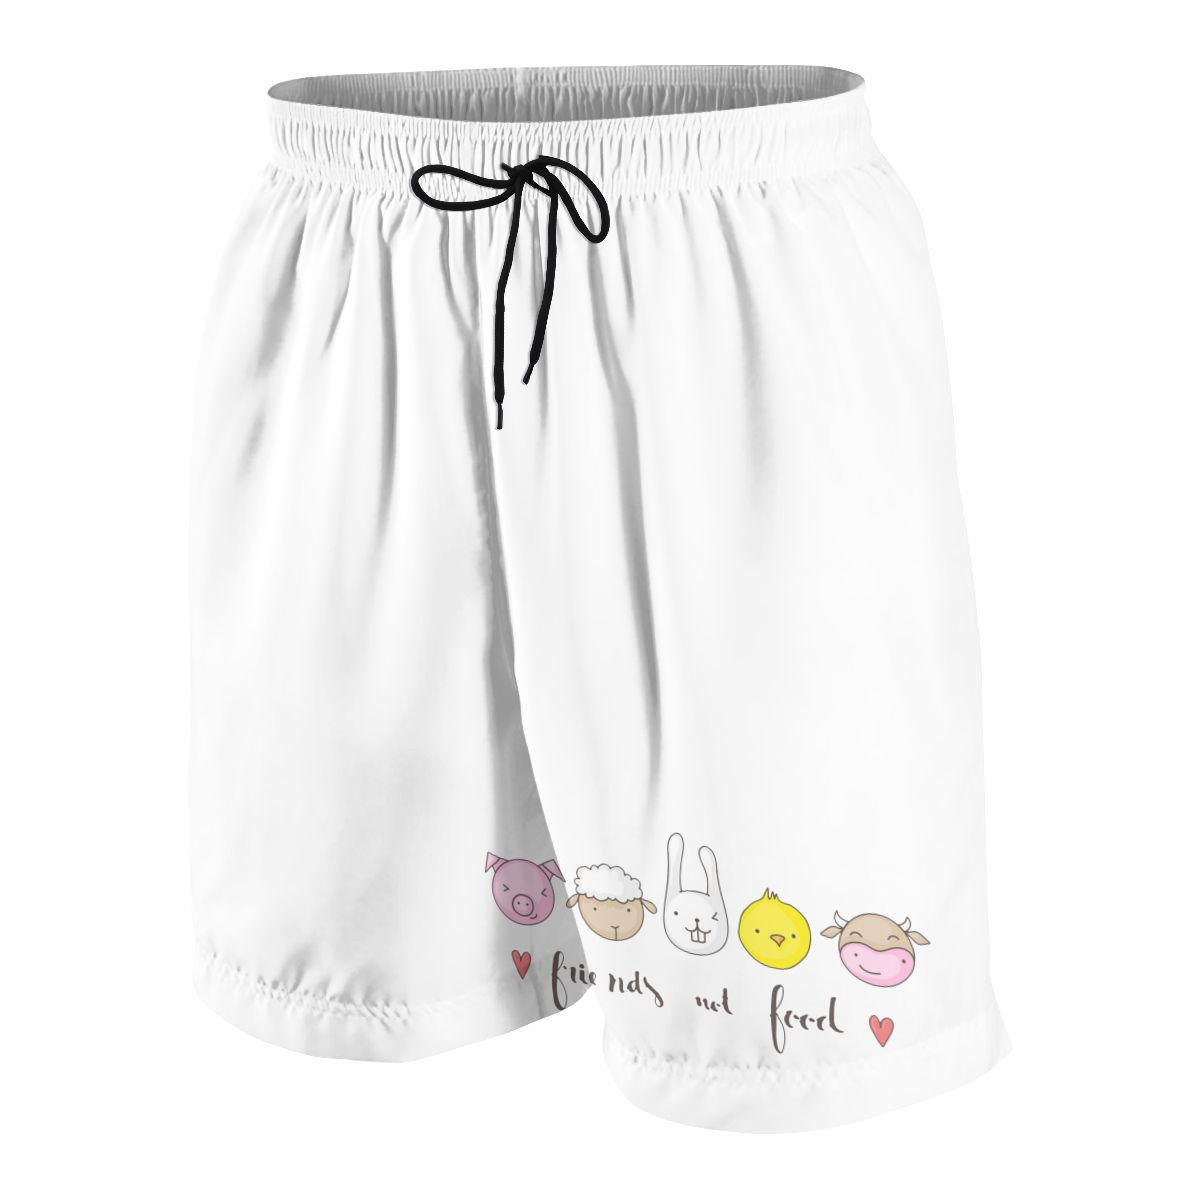 Friend-s Not Food Boys And Girls Shorts Summer Beach Loose Casual Pants